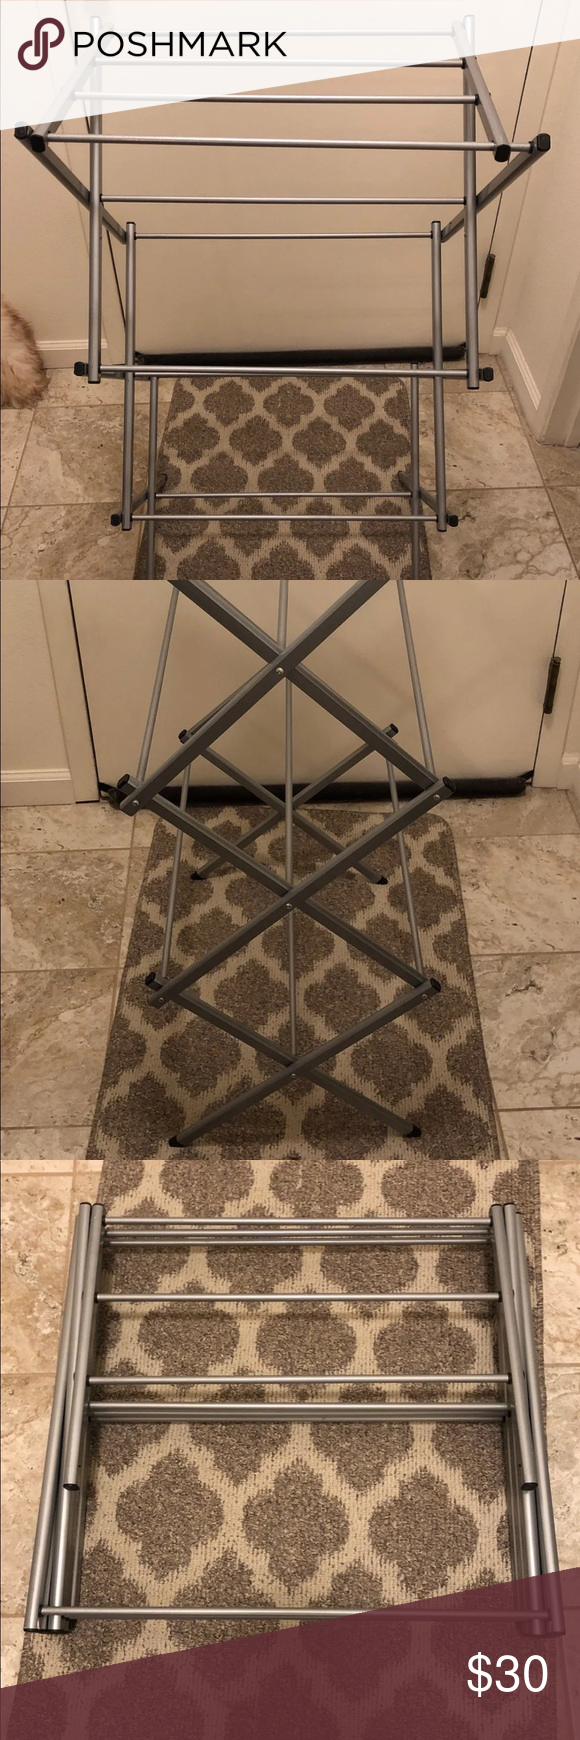 Bed Bath And Beyond Collapsible Drying Rack Convenient And